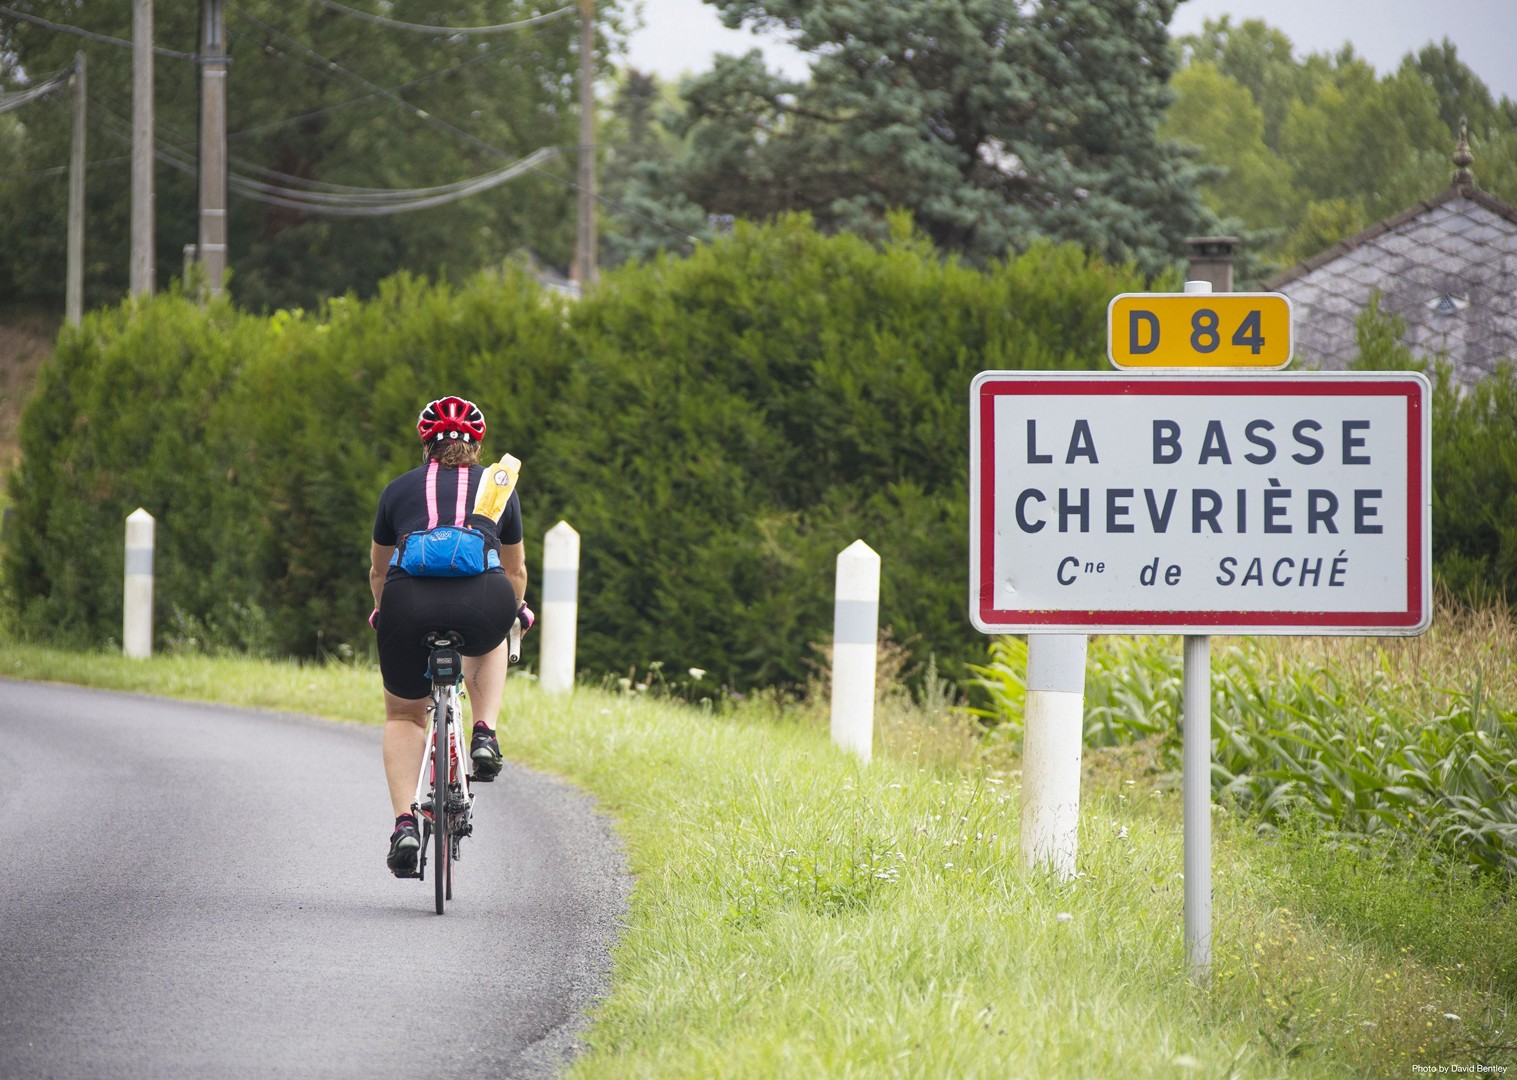 france-self-guided-cycling-holiday.jpg - France - Valley of the Loire - Self-Guided Leisure Cycling Holiday - Leisure Cycling